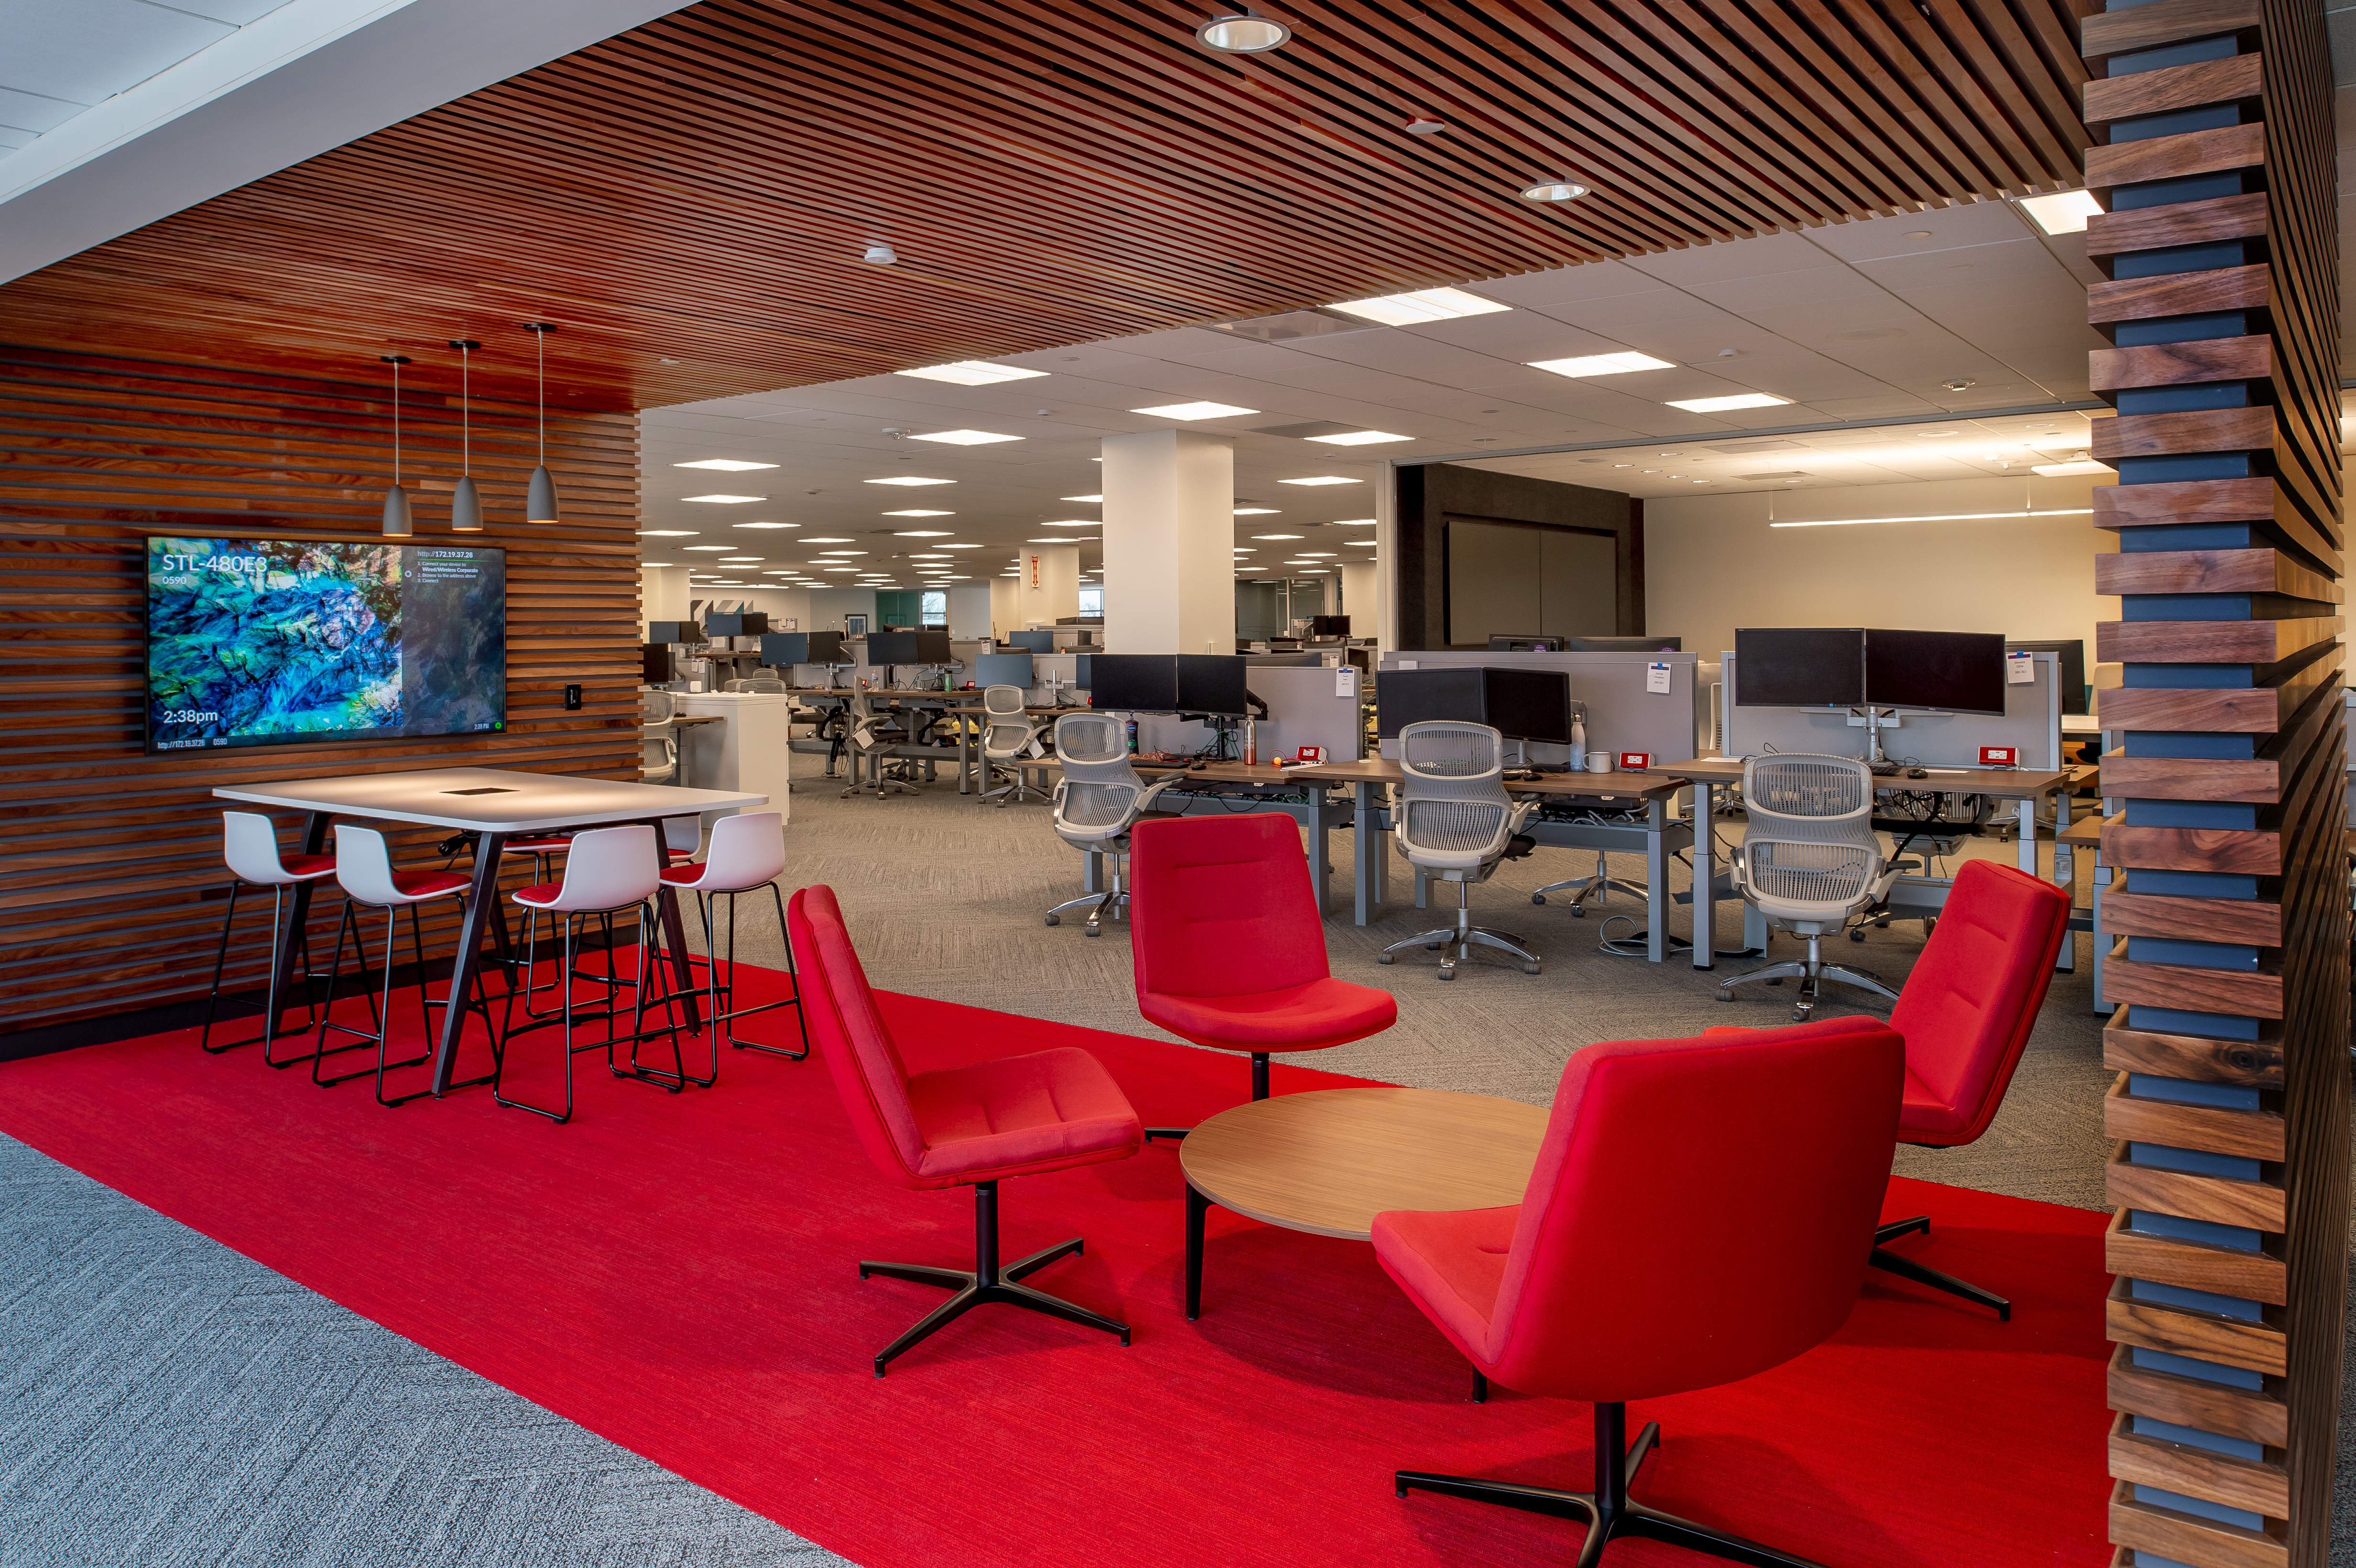 L Keeley Building Group Final MasterCard Interior Office Renovation